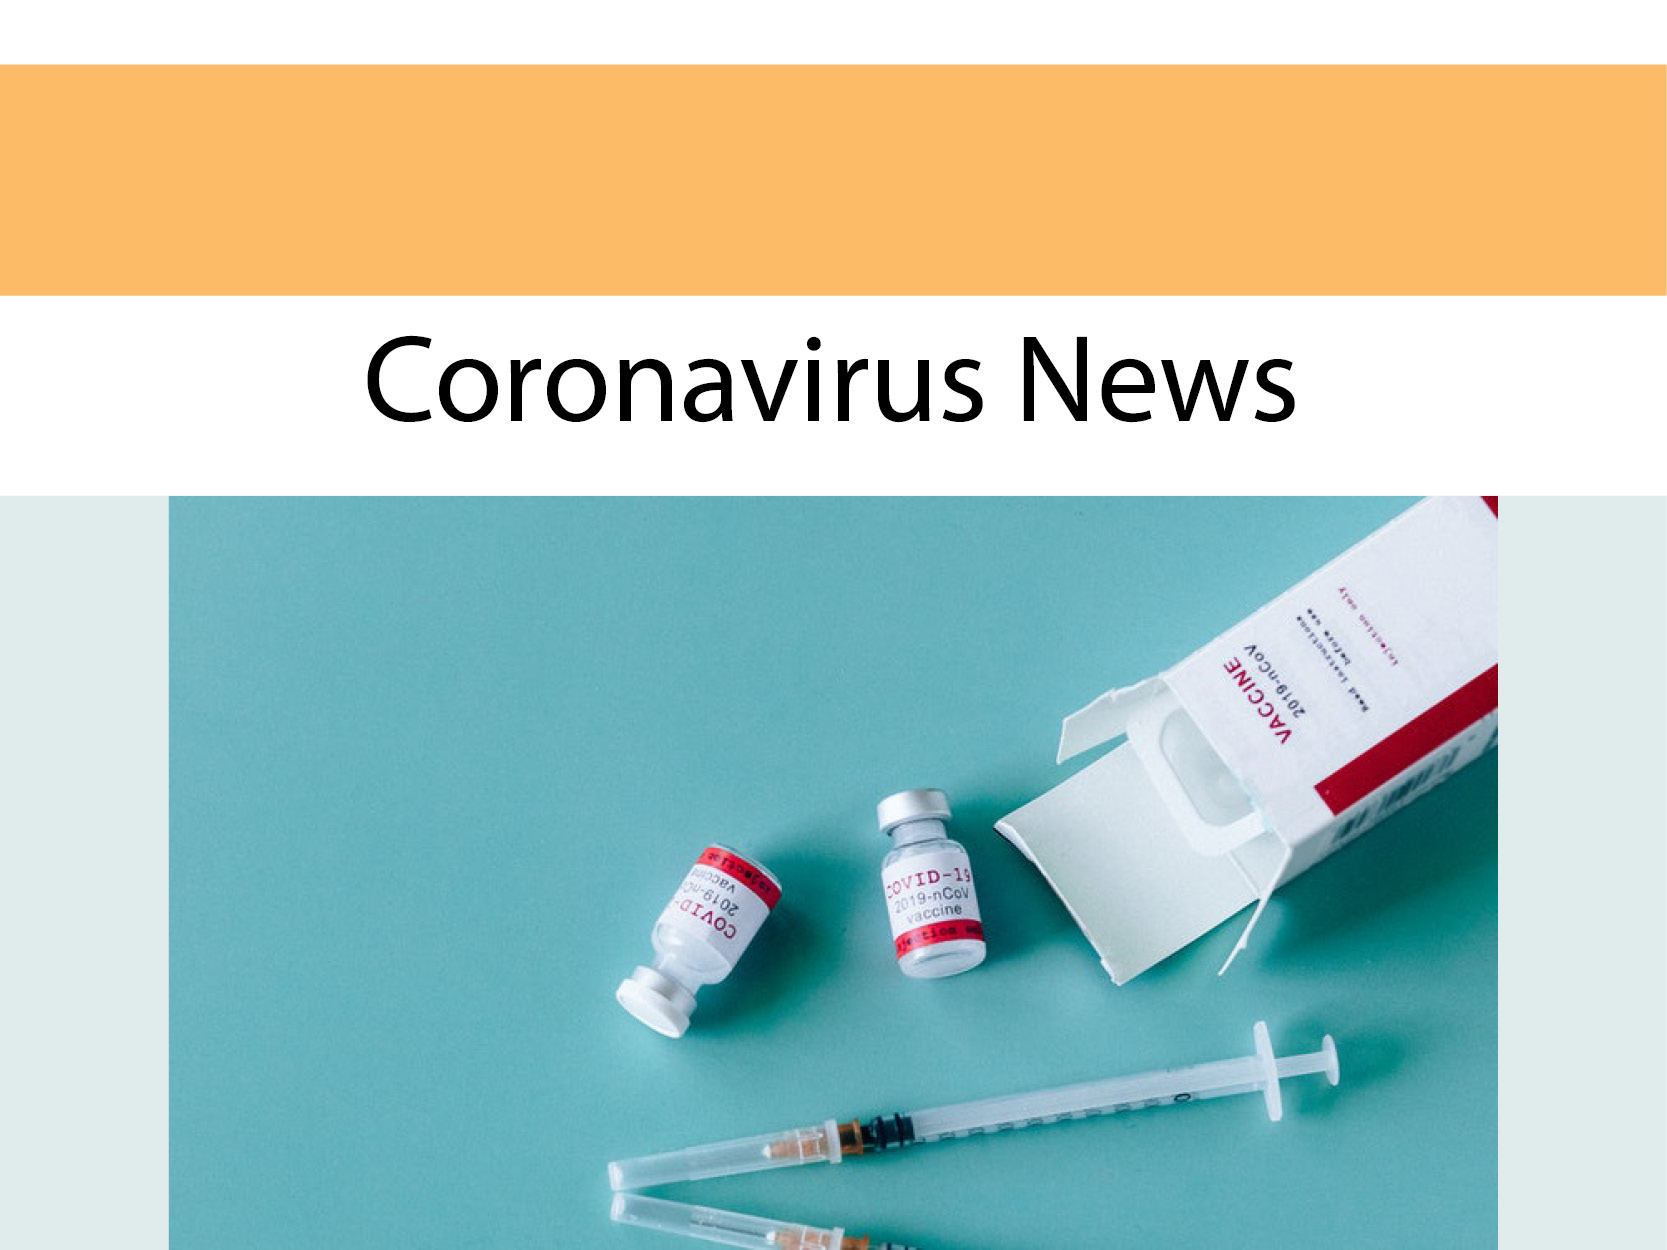 Ontario halts use of AstraZeneca COVID-19 vaccination - The Review Newspaper